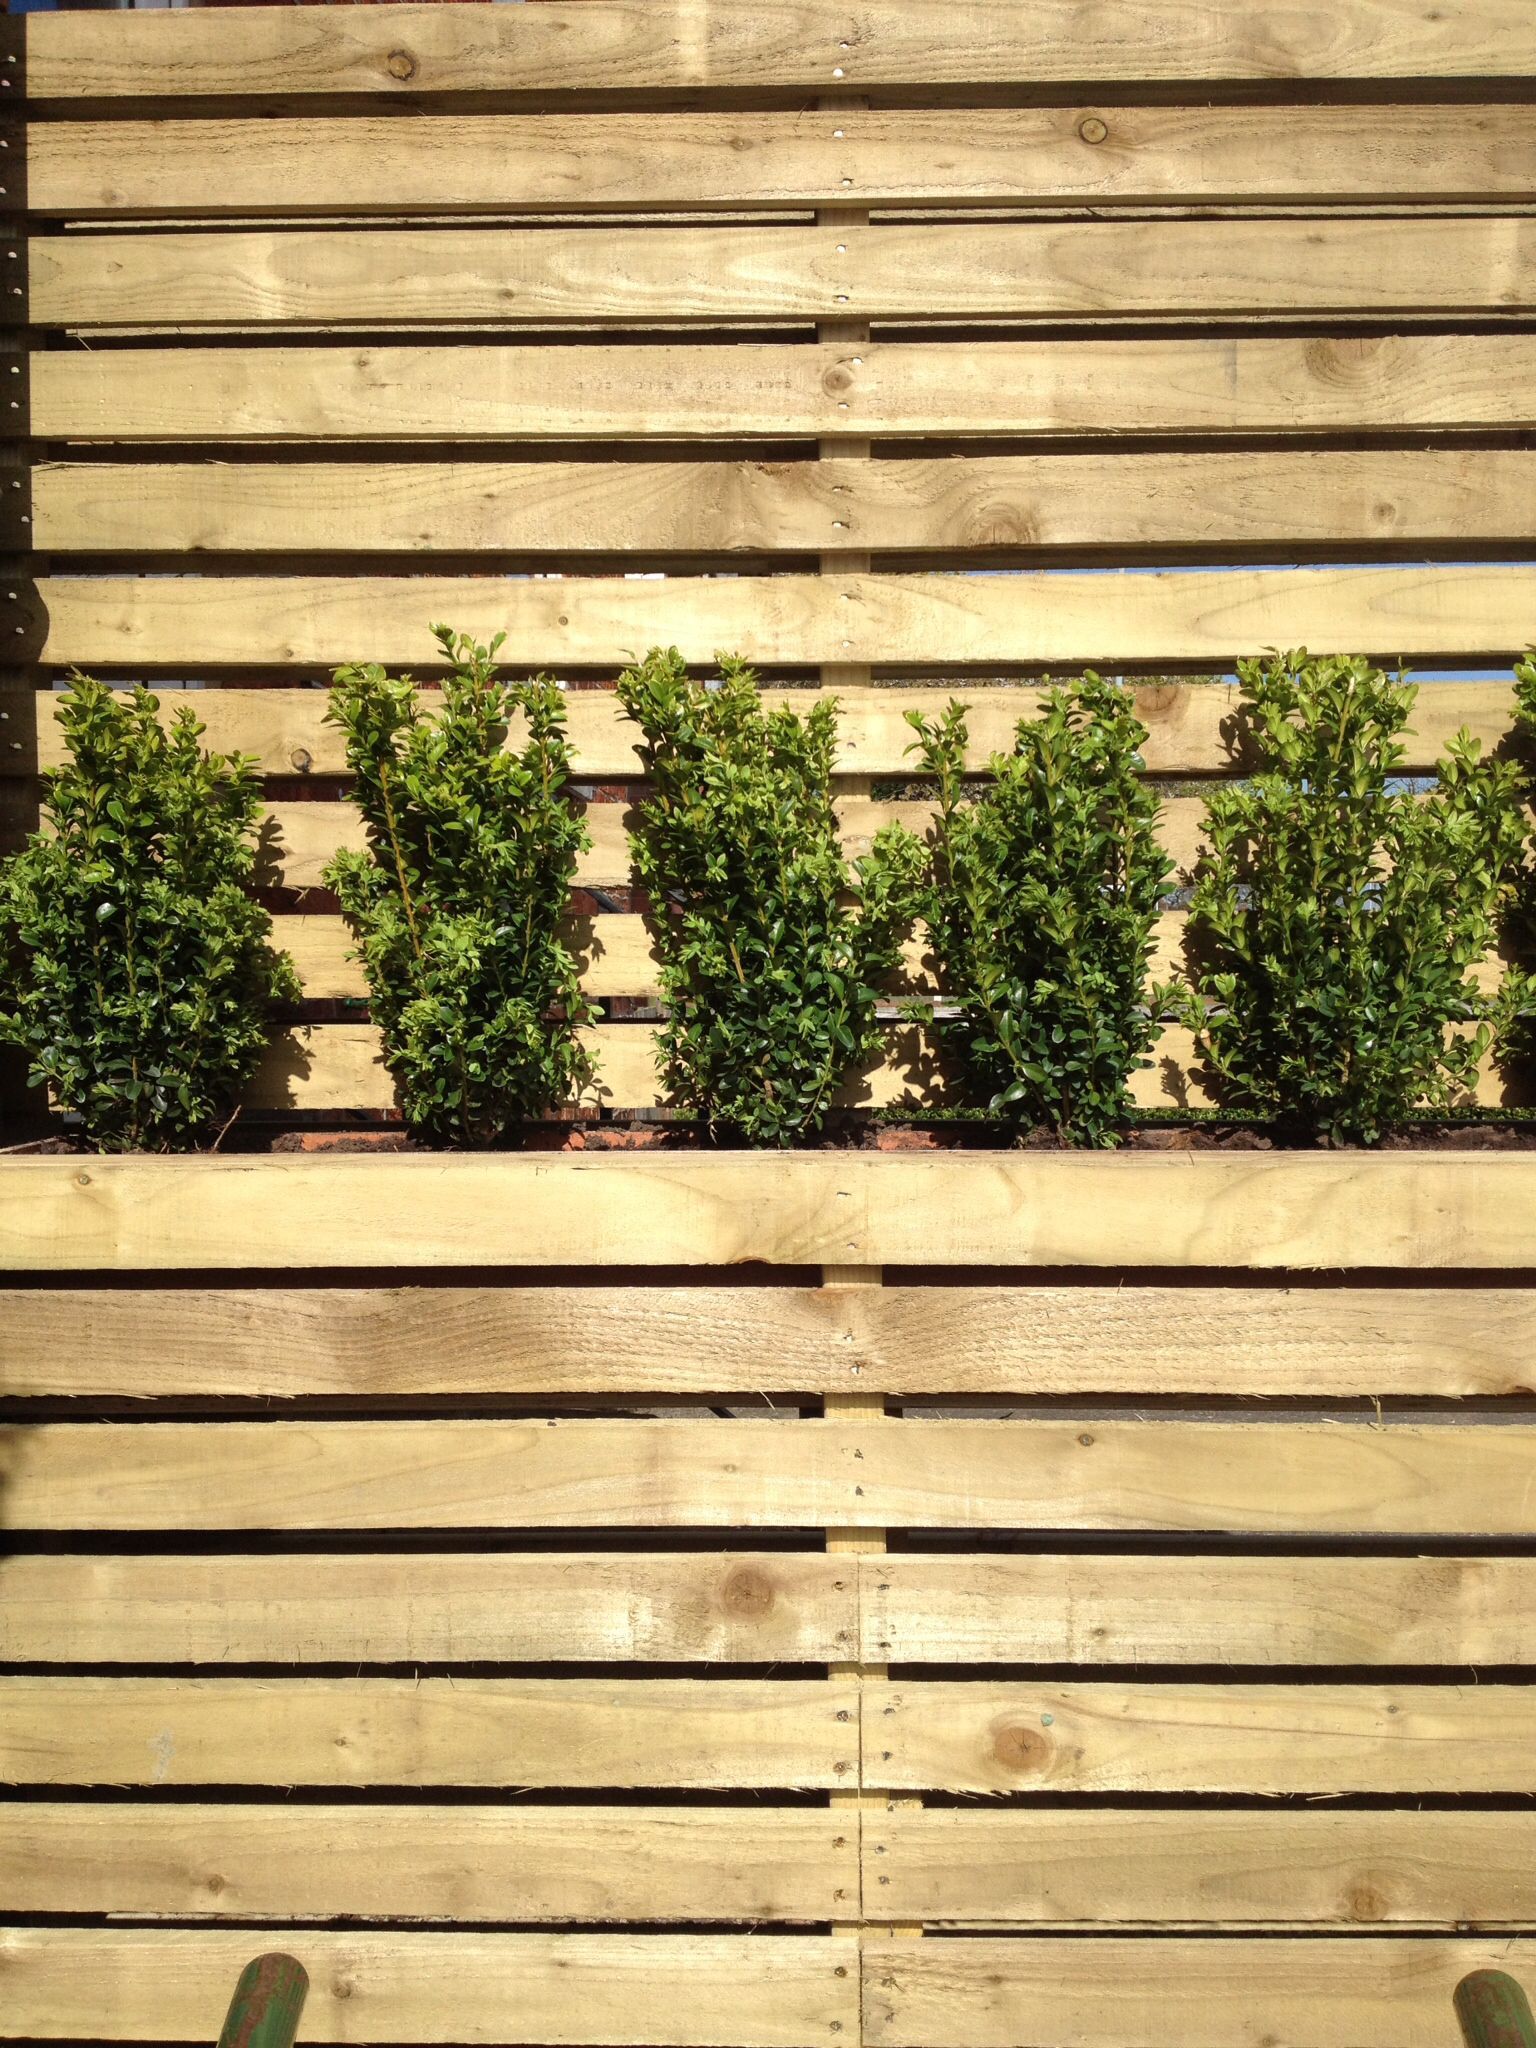 3x1 treated timber contemporary design fencing. Incorporated planter ...